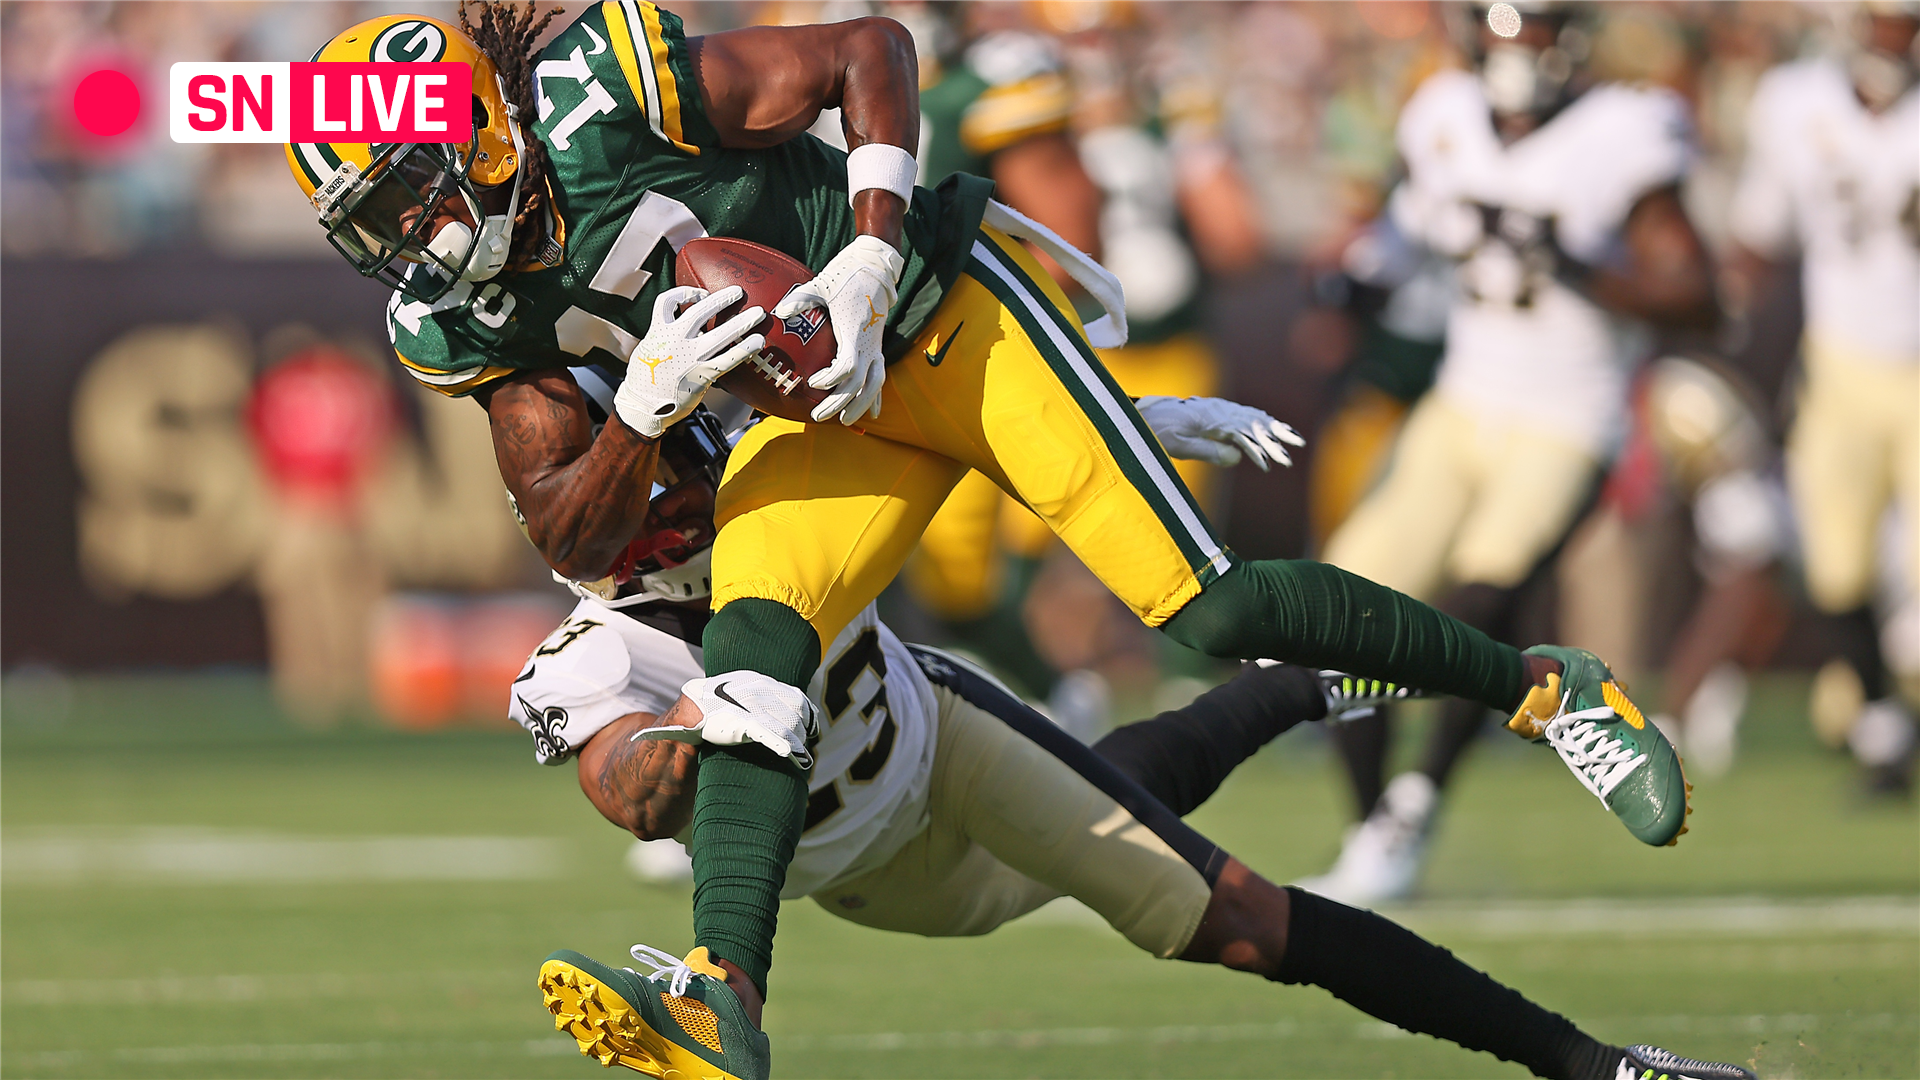 Packers vs. Lions live score, updates, highlights from NFL 'Monday Night Football' game